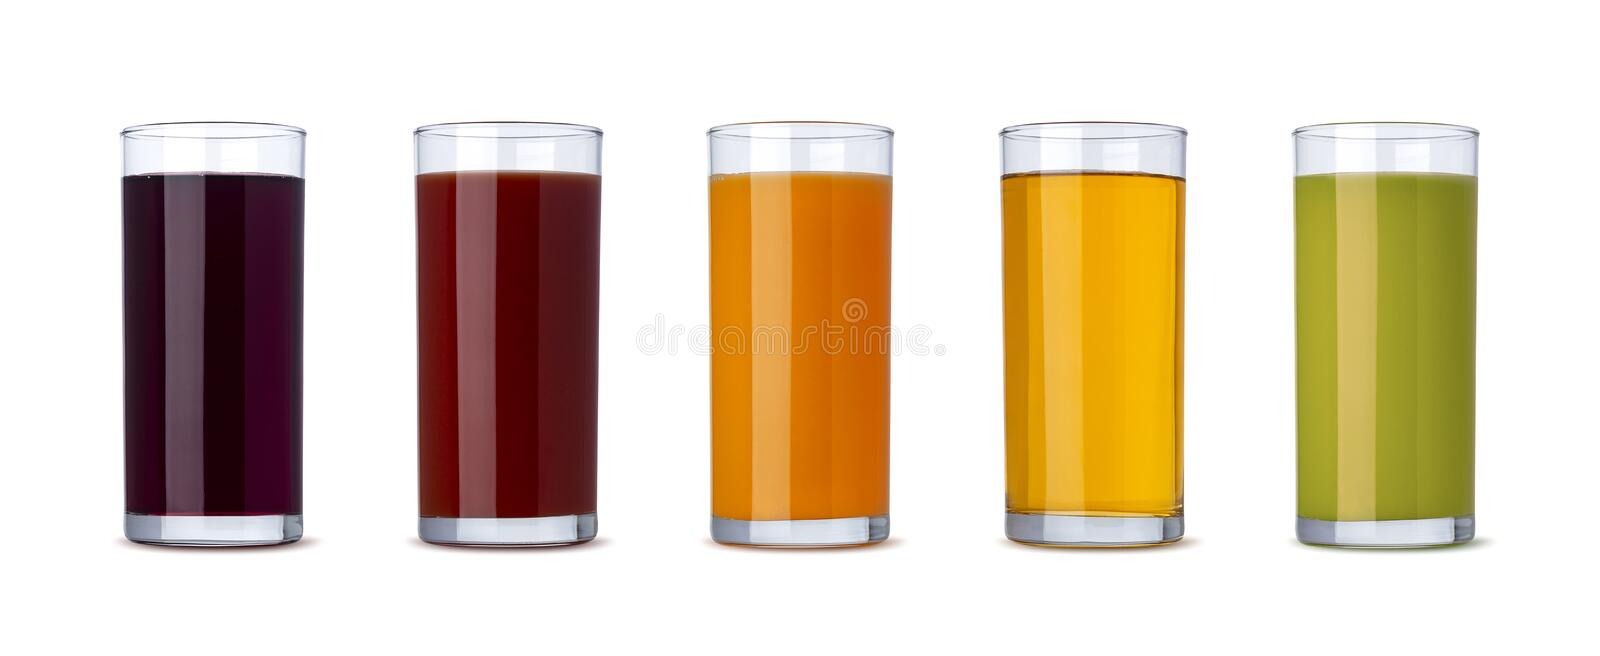 Fresh vegetable and fruit juice in glass isolated on white background with clipping path royalty free stock photography